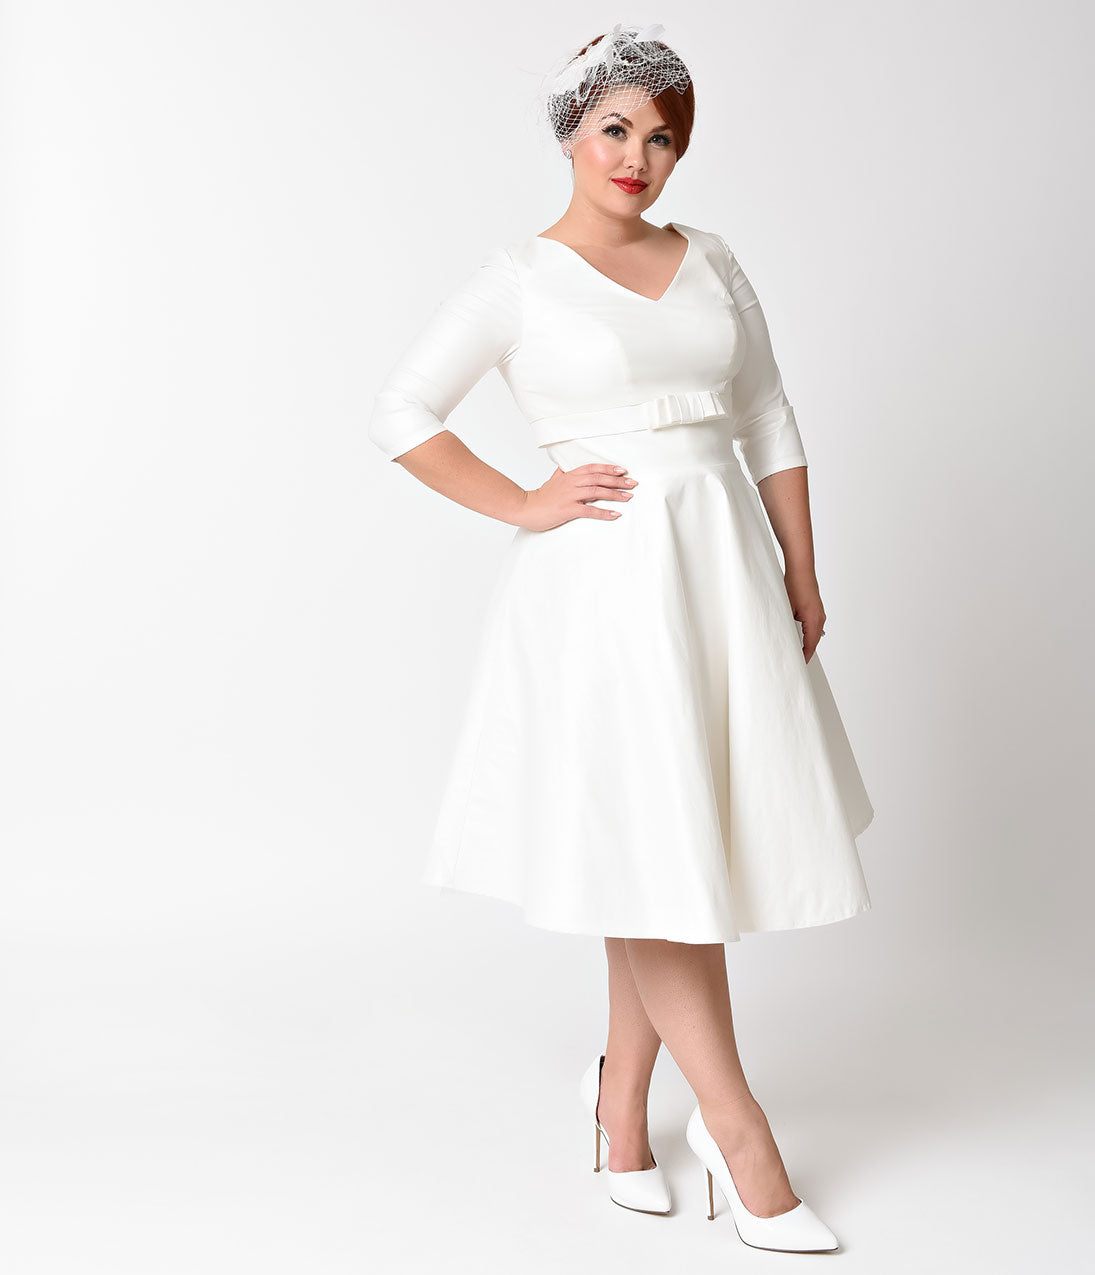 60s Wedding Dress | 1960s Style Wedding Dresses Voodoo Vixen Plus Size 1950s Style White Dorothy Swing Dress $107.00 AT vintagedancer.com